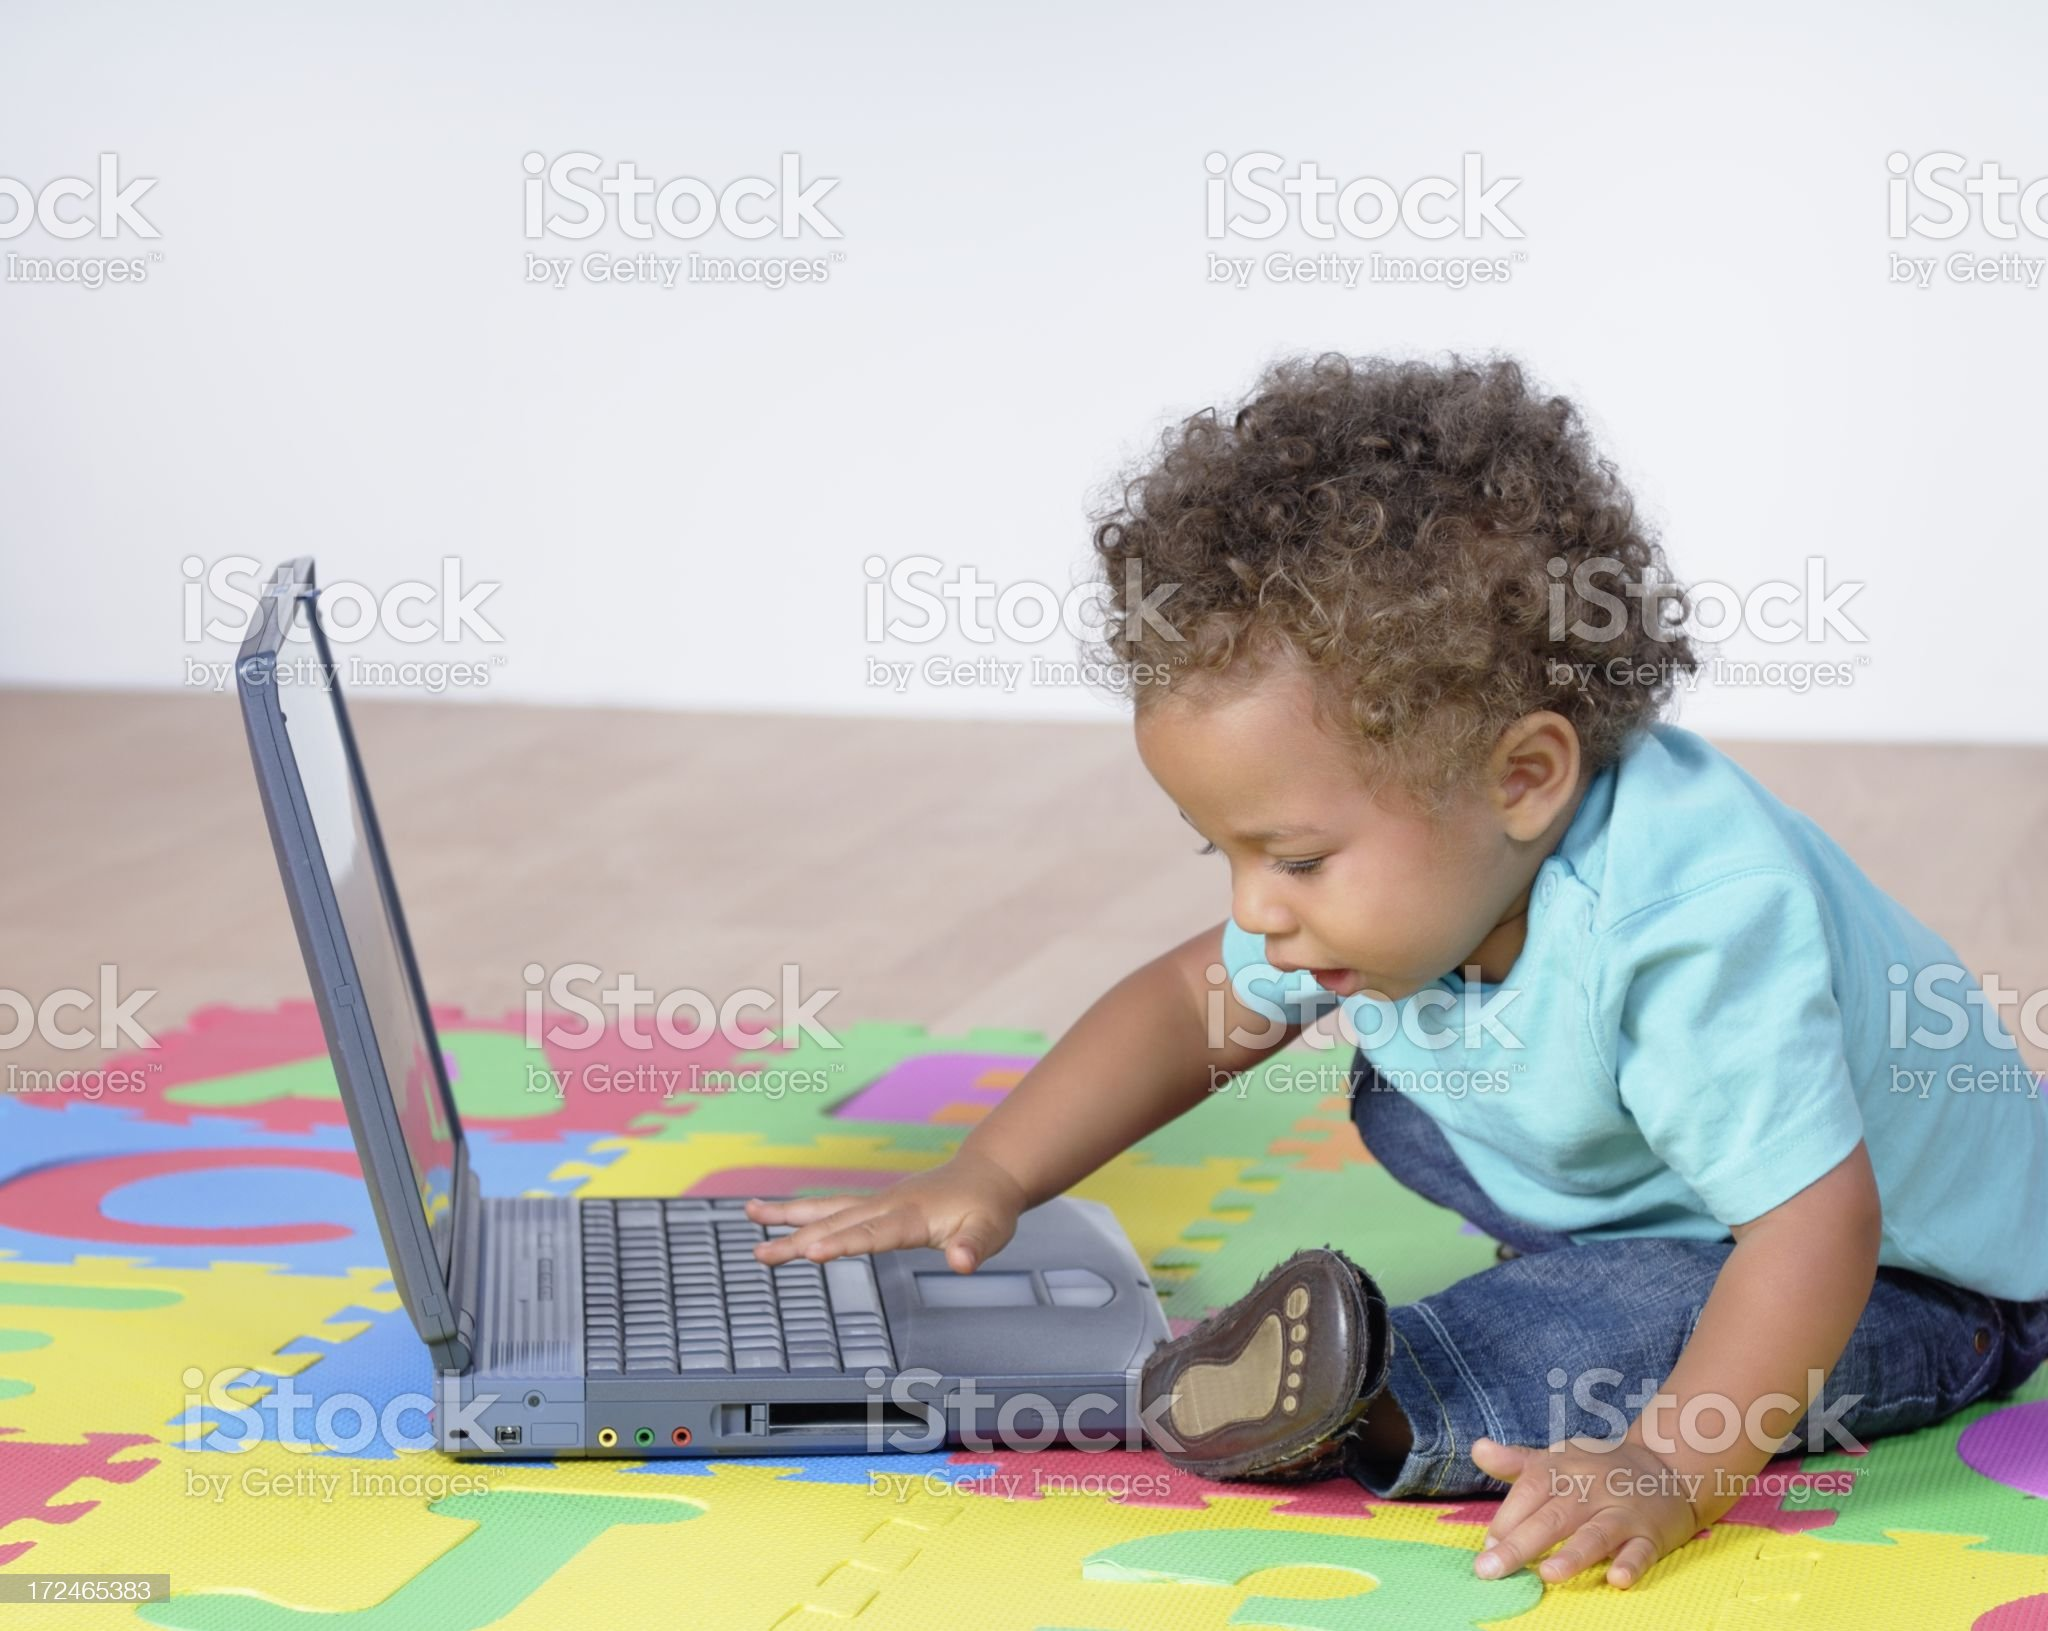 Biracial Baby Boy/ Toddler Using A Laptop On The Playmat royalty-free stock photo